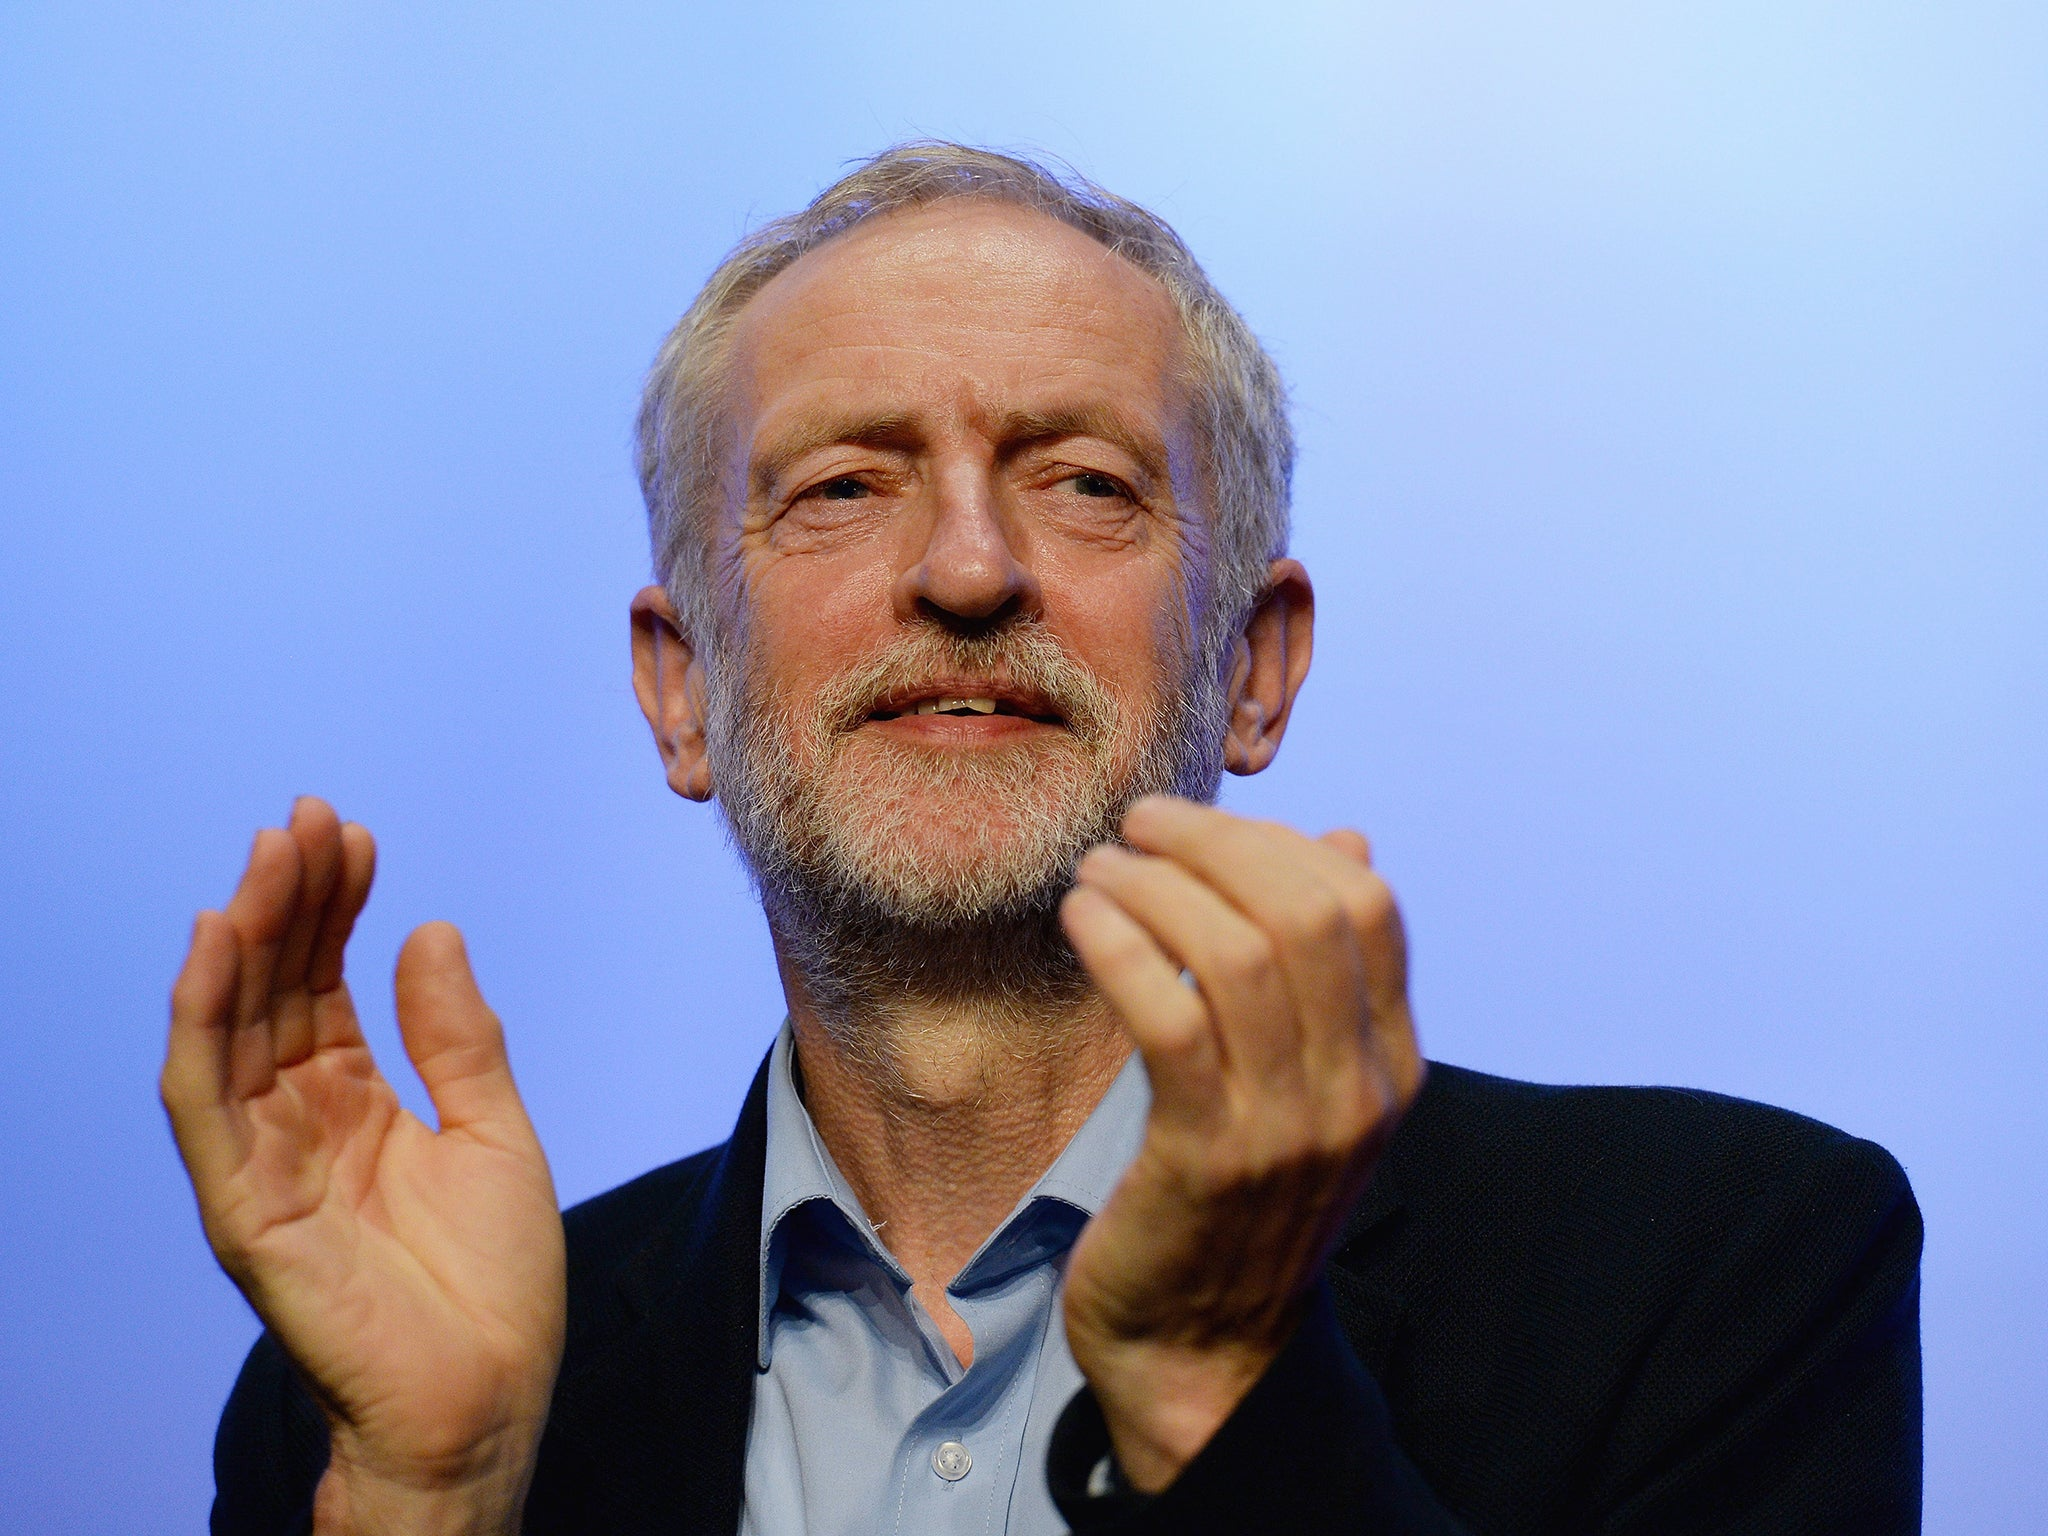 Jeremy corbyn risks splitting his party further with new role at cnd